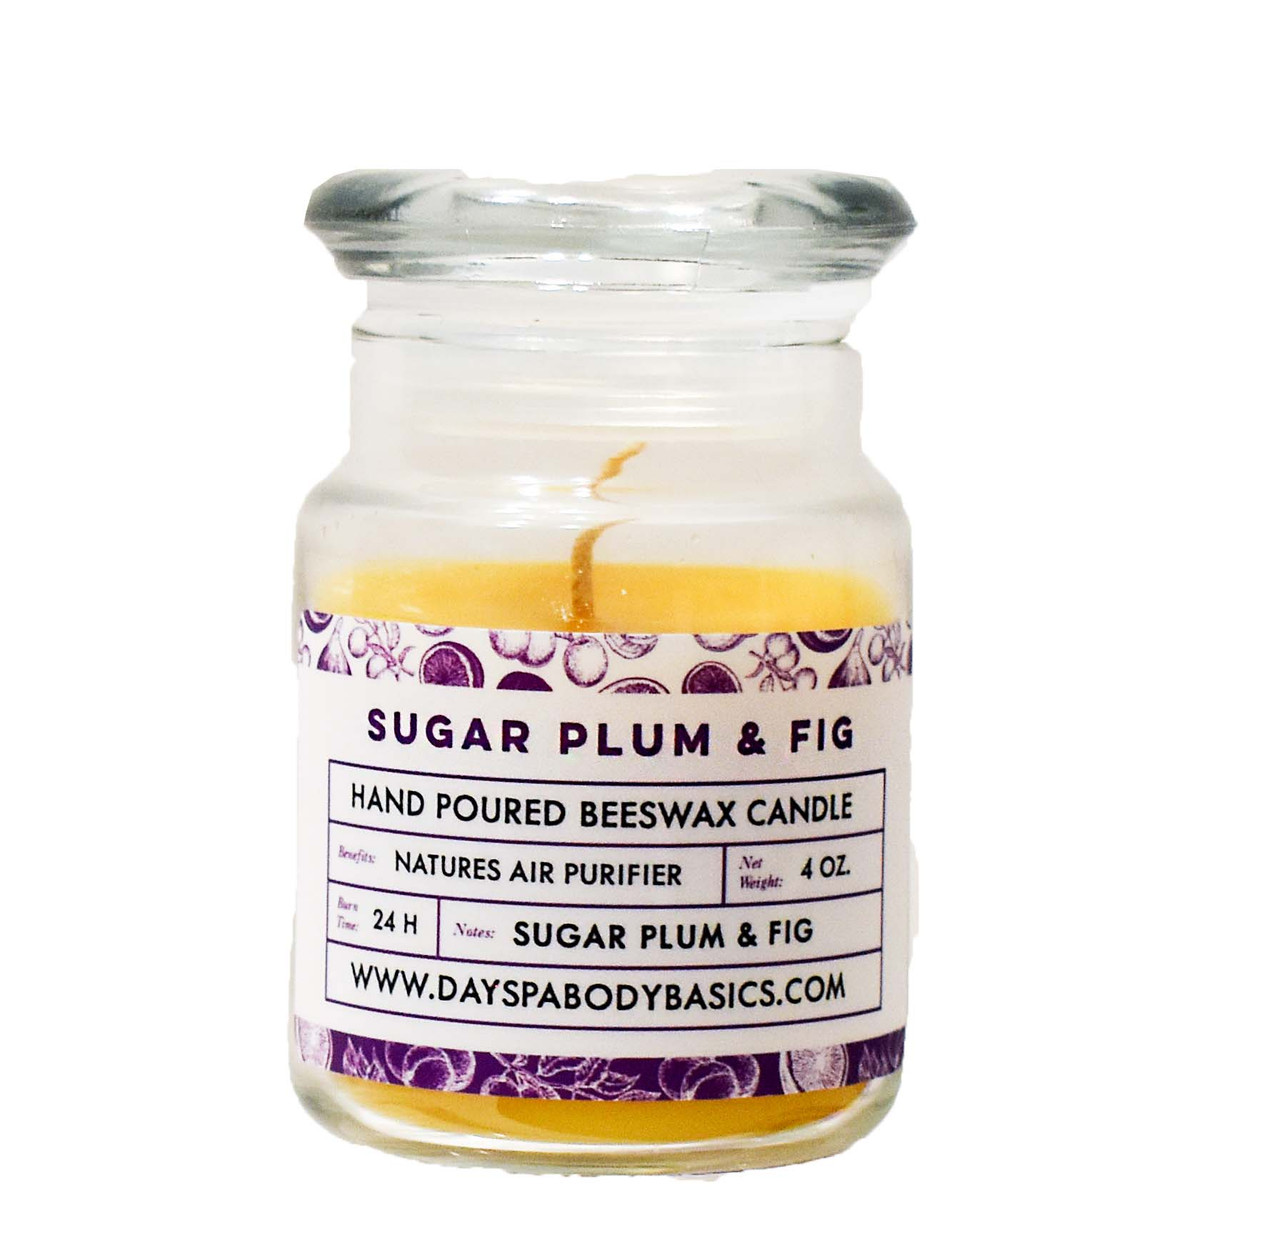 Sugar Plum and Fig All Natural Beeswax Candle